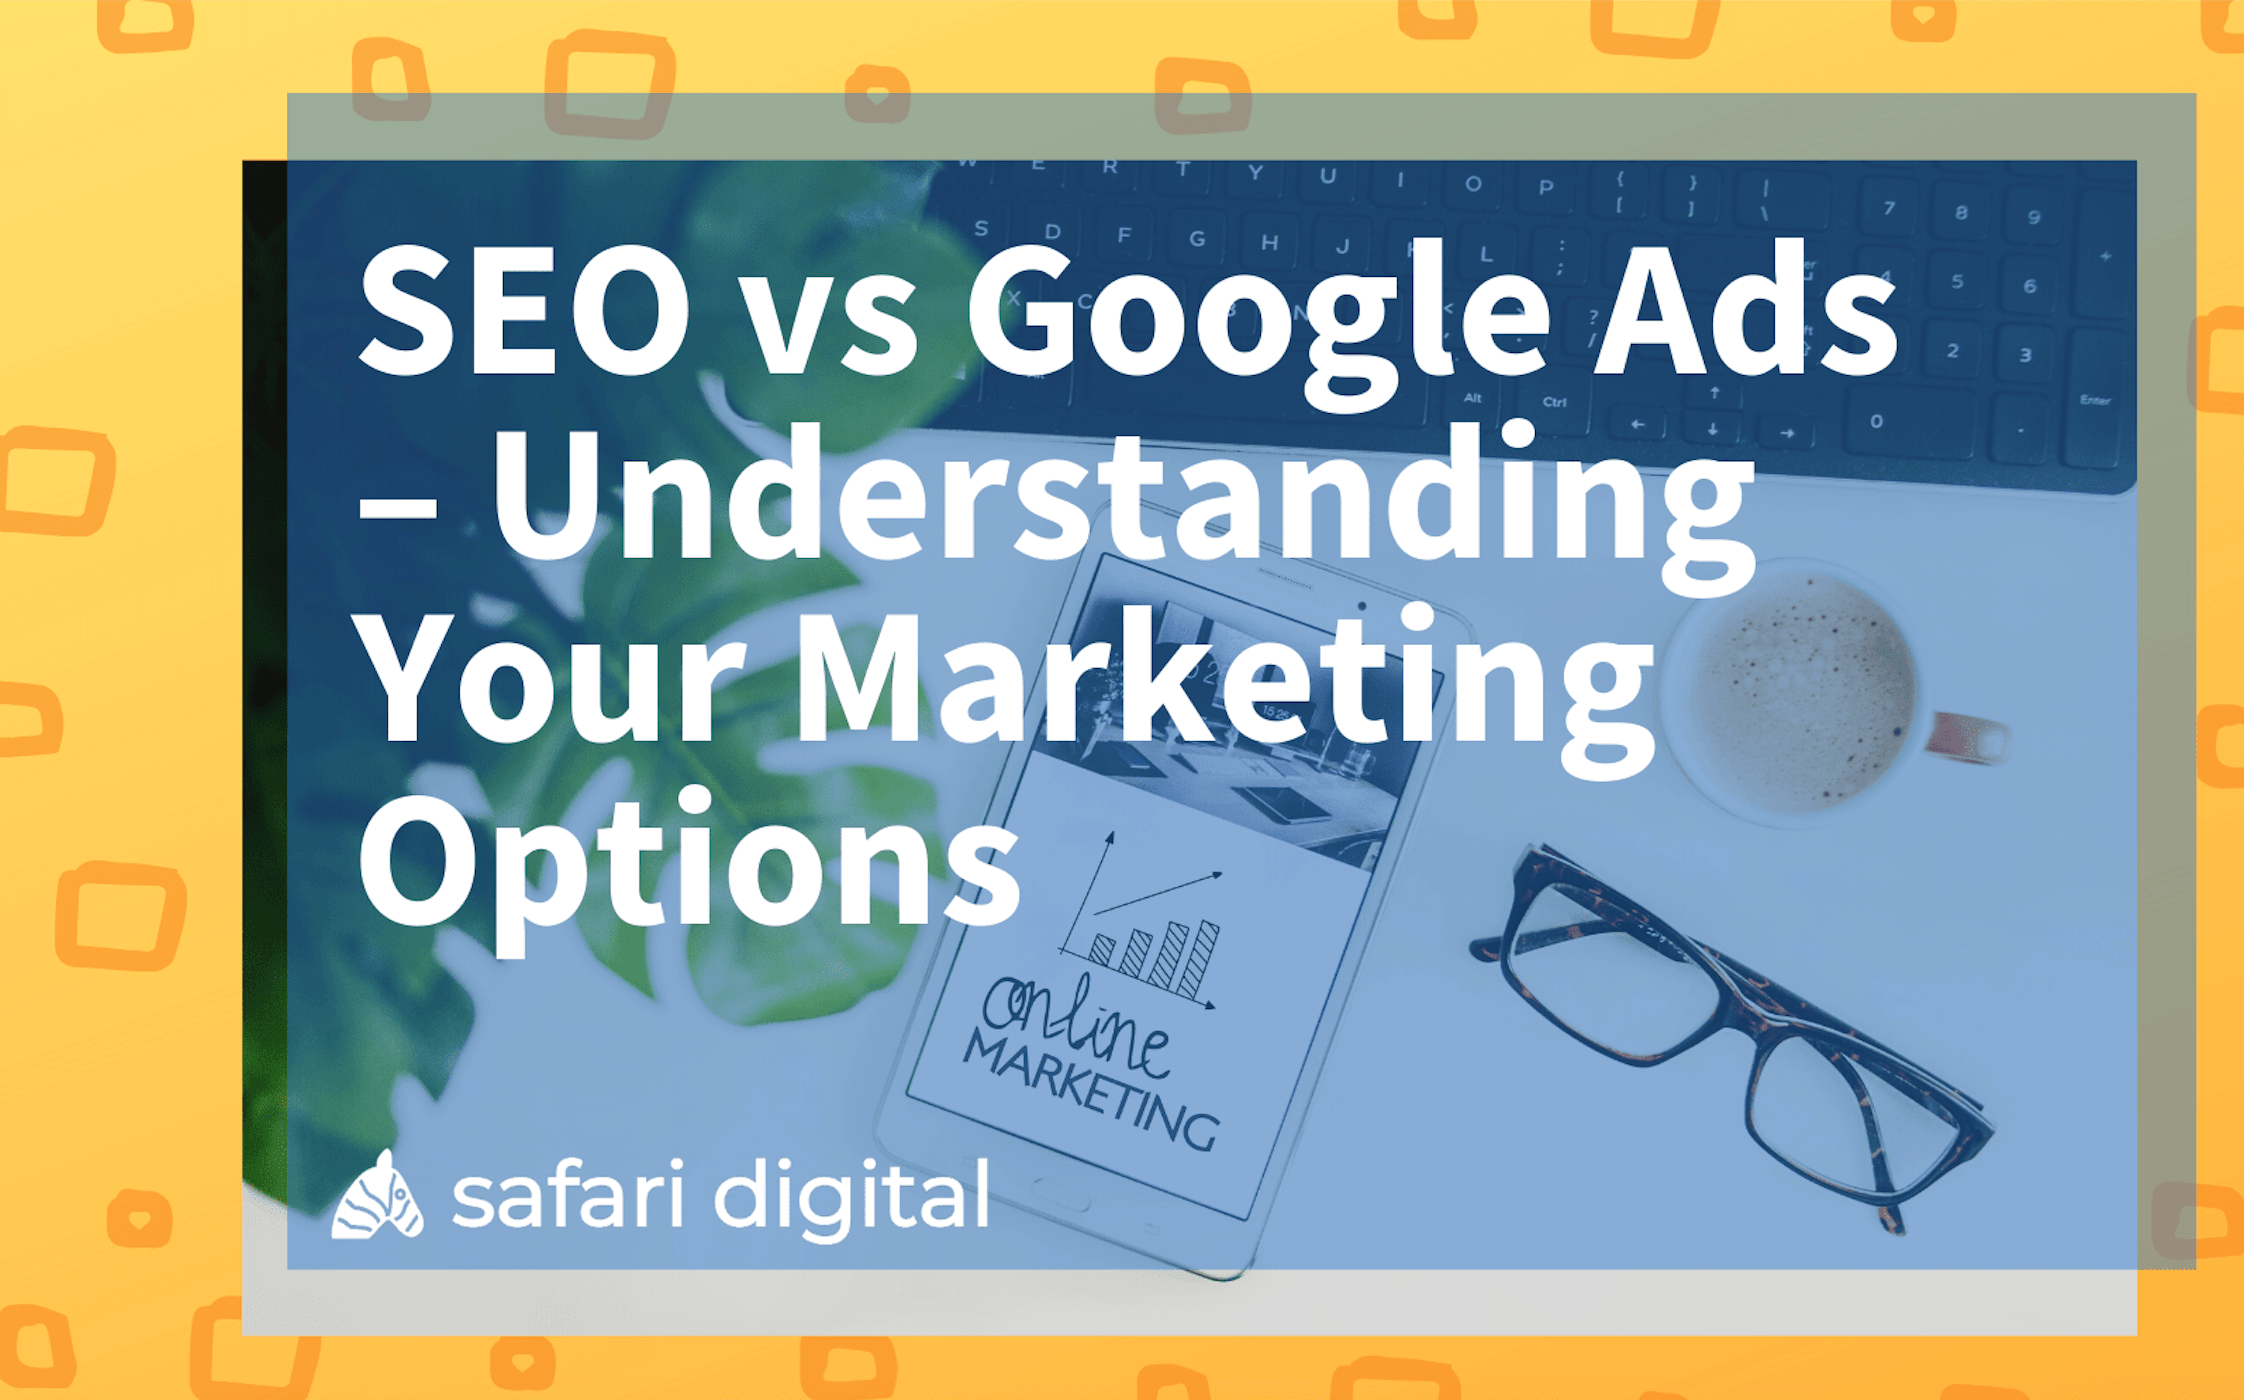 seo vs google ads - the main difference